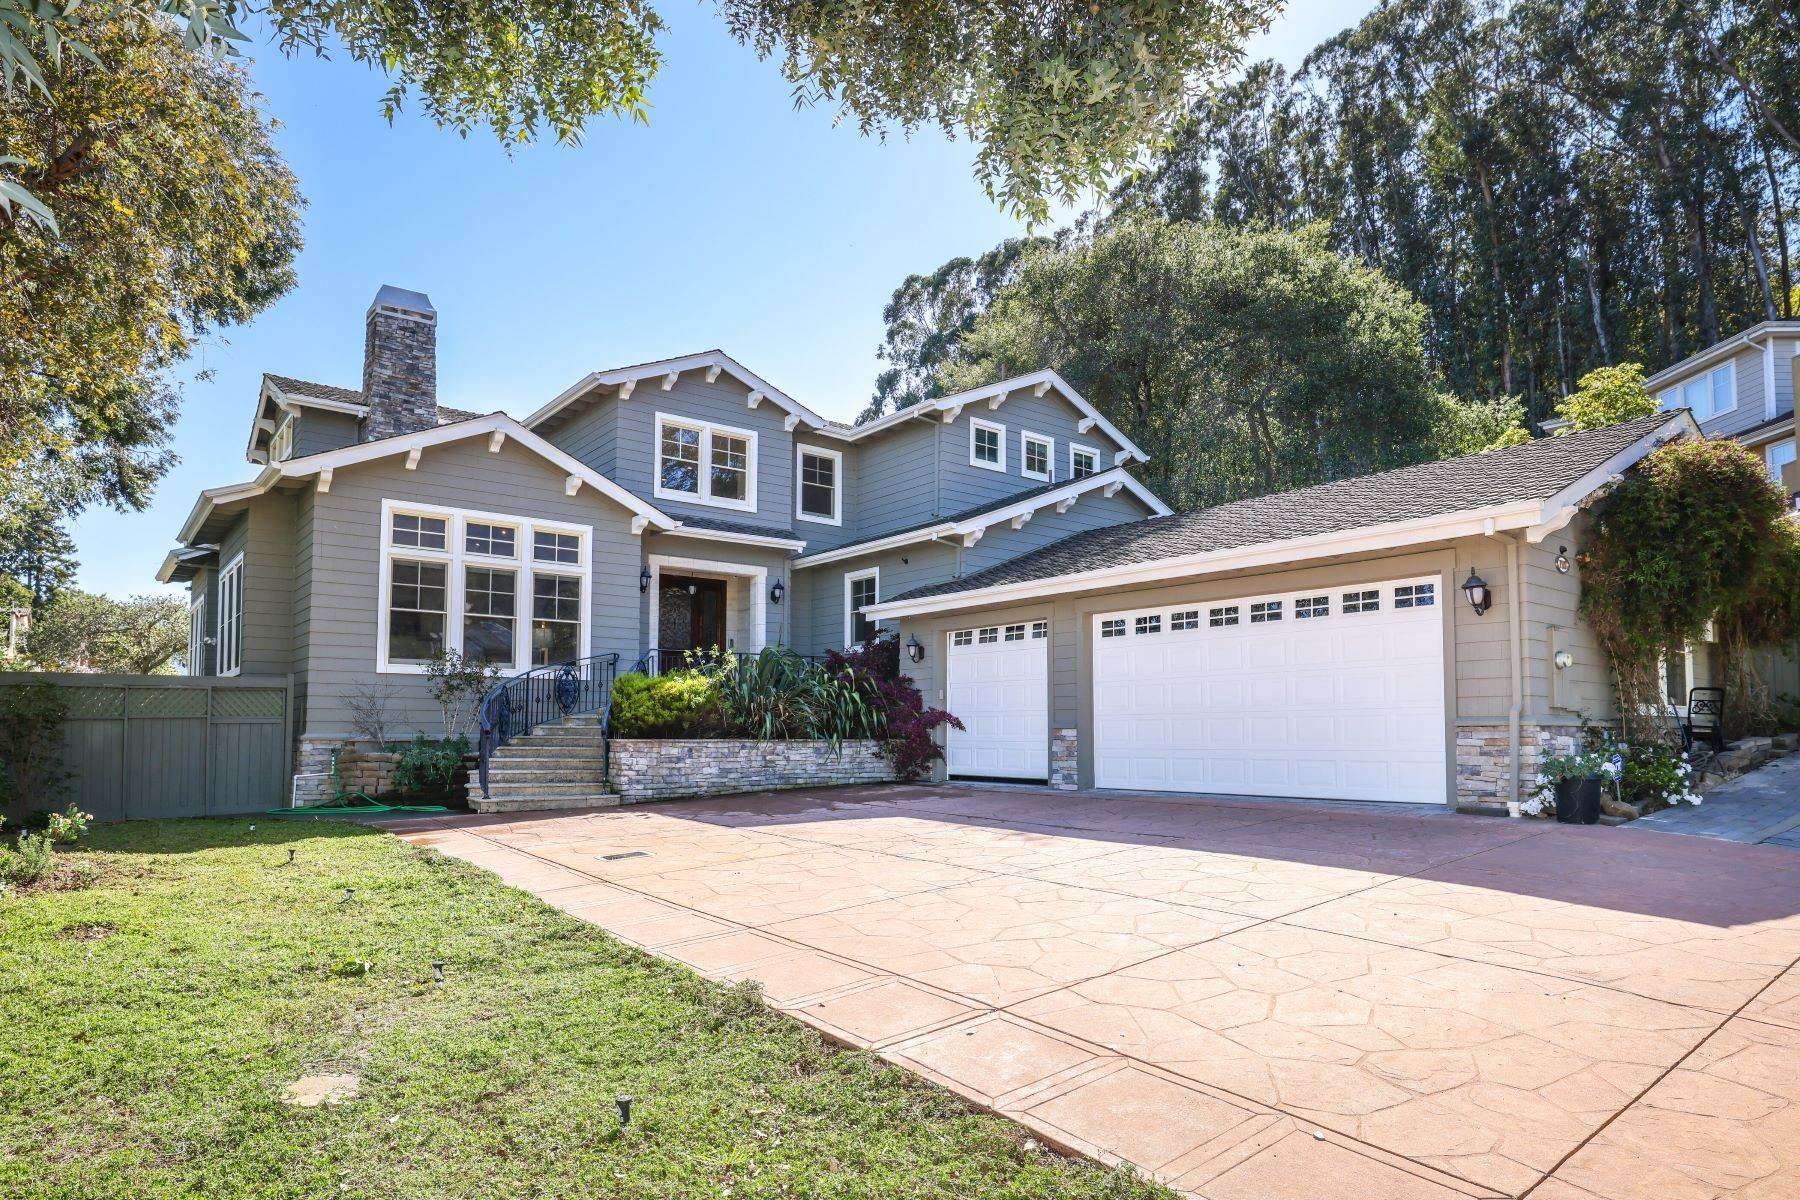 Property for Sale at Stunning Custom Built Executive Home! 710 Santa Barbara Avenue Millbrae, California 94030 United States